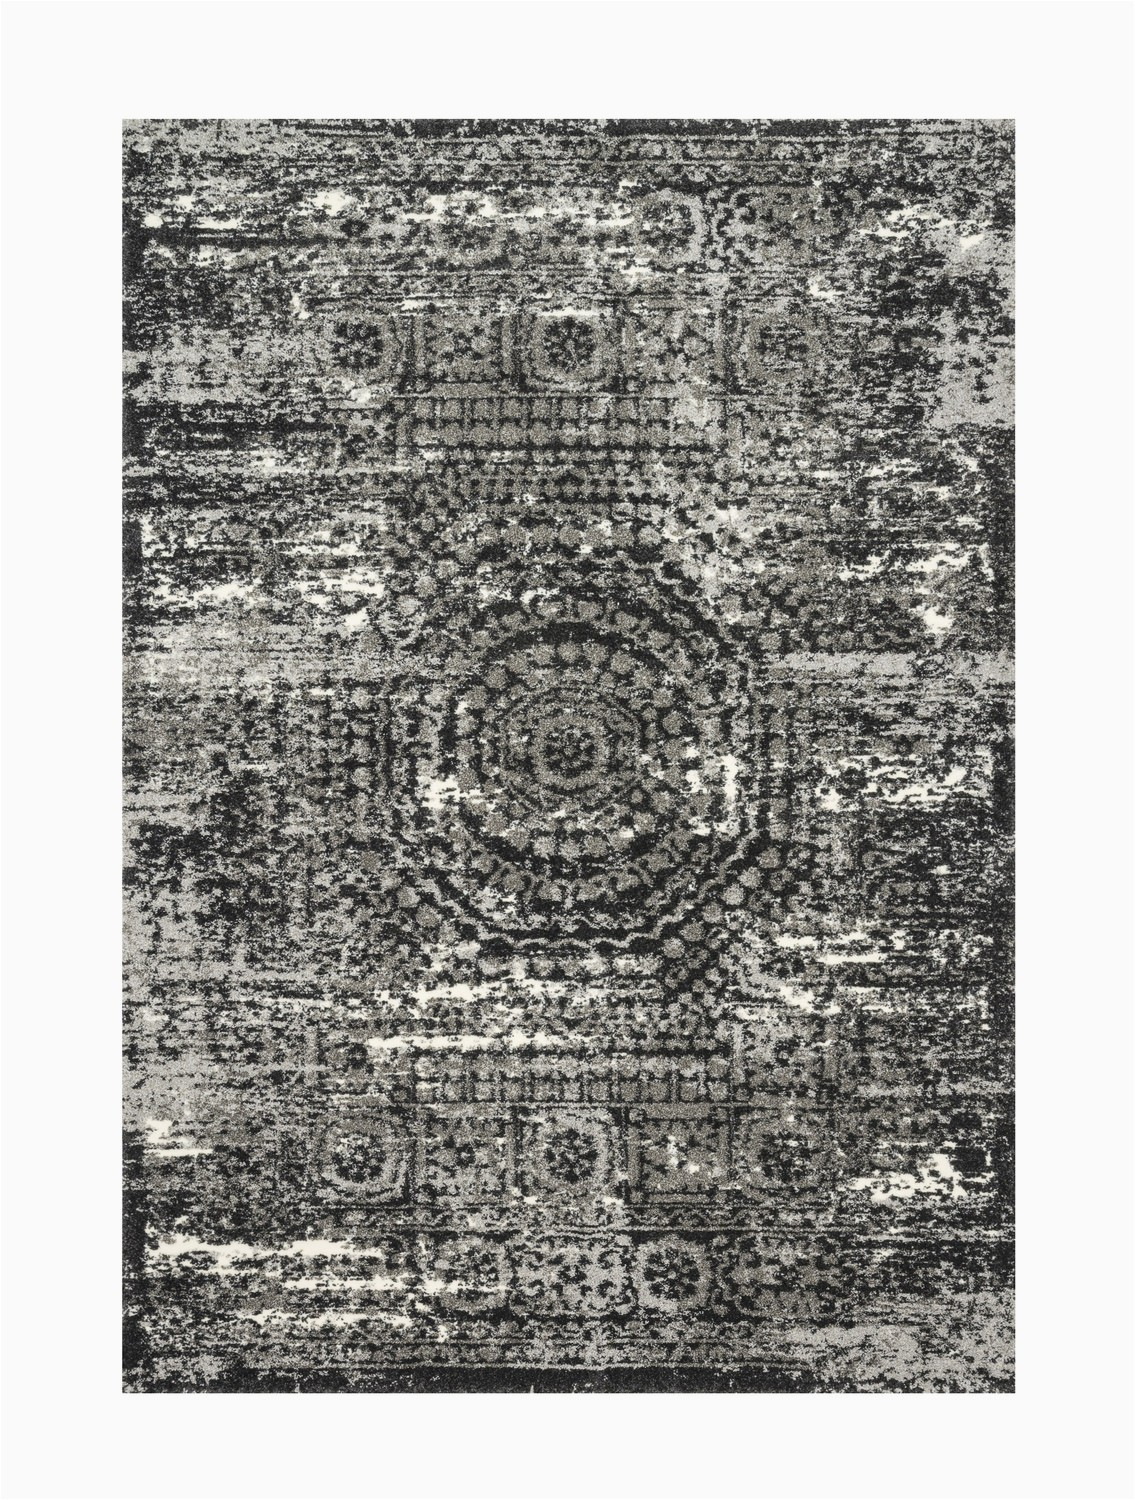 5 X 7 Black area Rug Viera Graphite Black area Rug